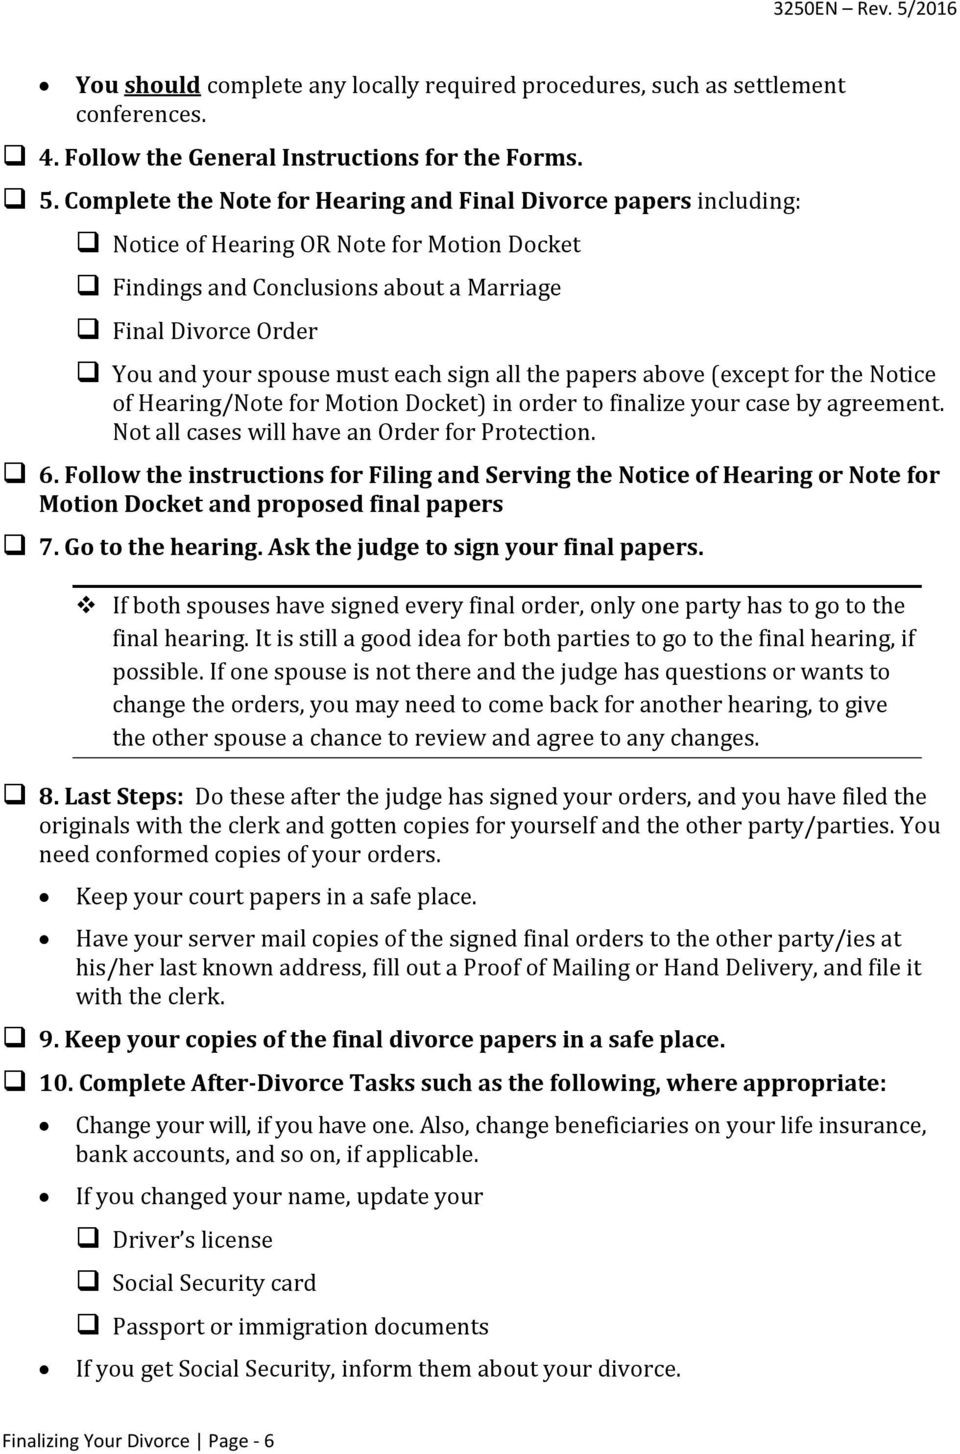 each sign all the papers above (except for the Notice of Hearing/Note for Motion Docket) in order to finalize your case by agreement. Not all cases will have an Order for Protection. 6.